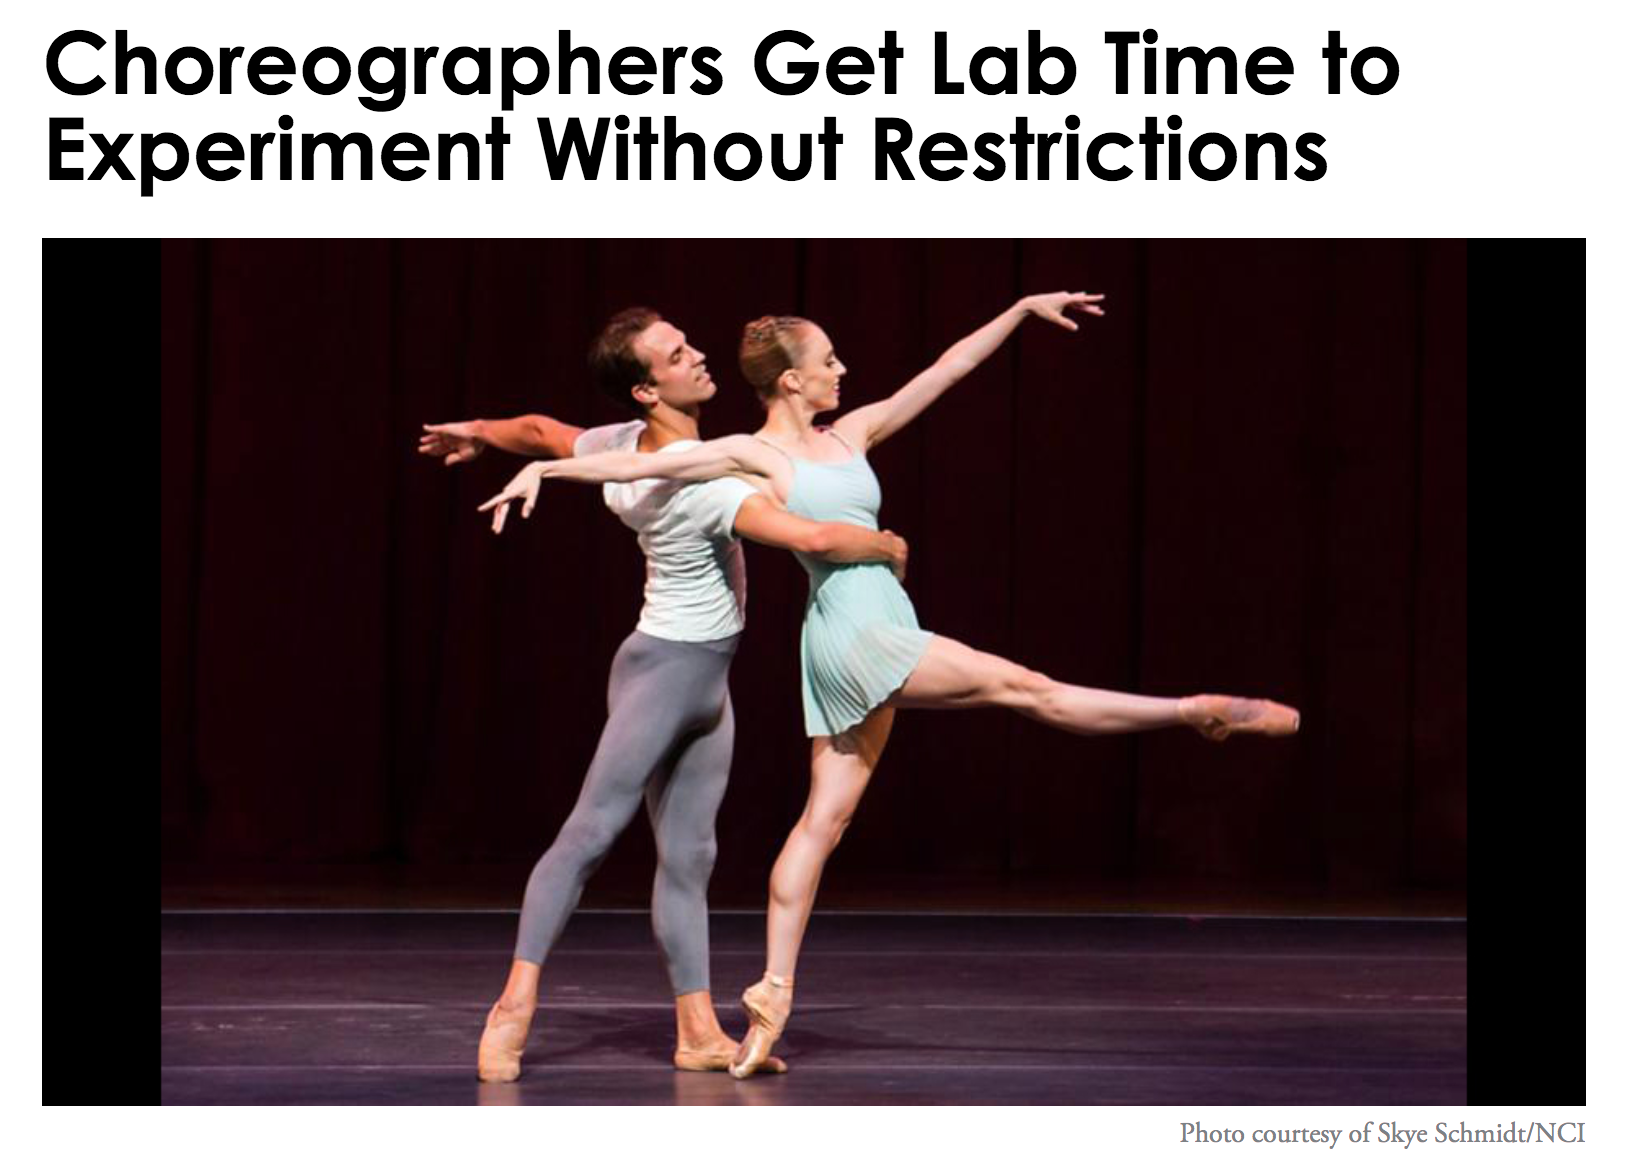 Choreographers Get Lab Time to Experiment Without Restrictions